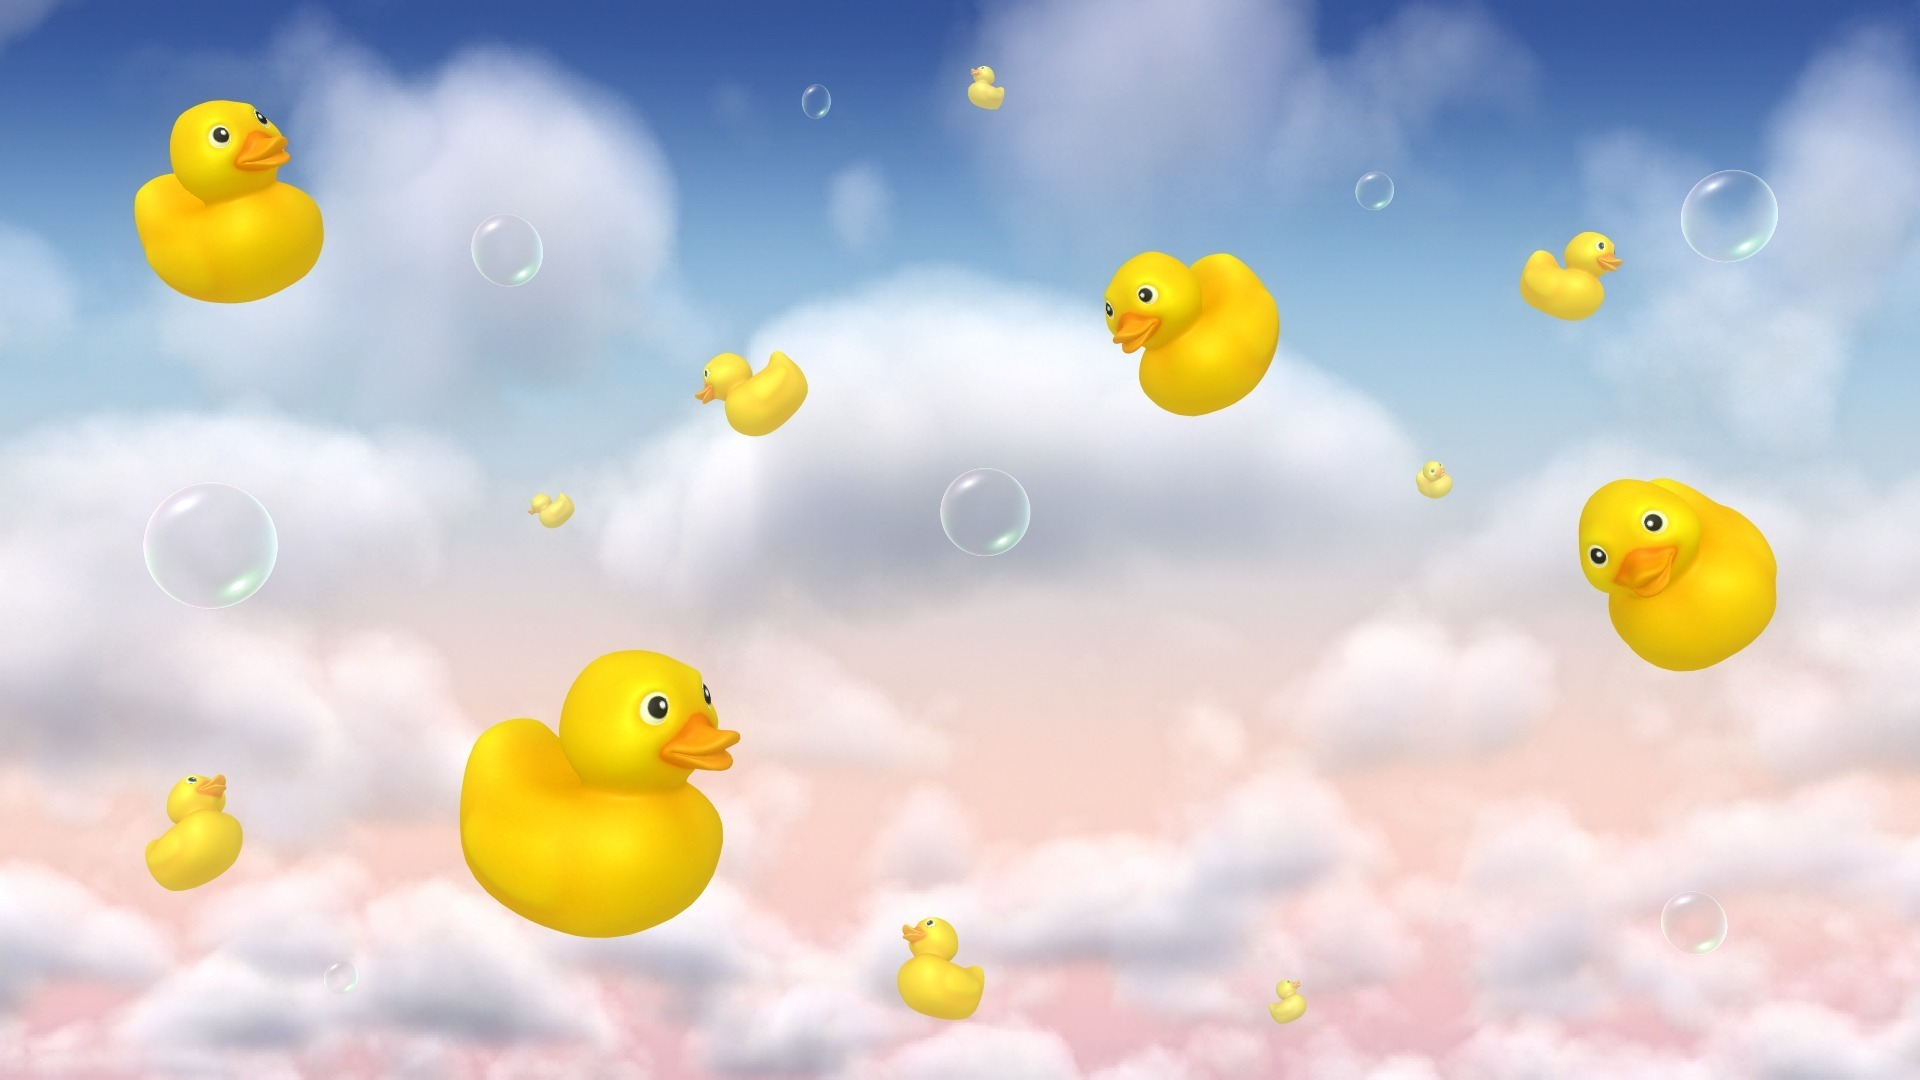 Rubber Duck Wallpaper Wallpapersafari